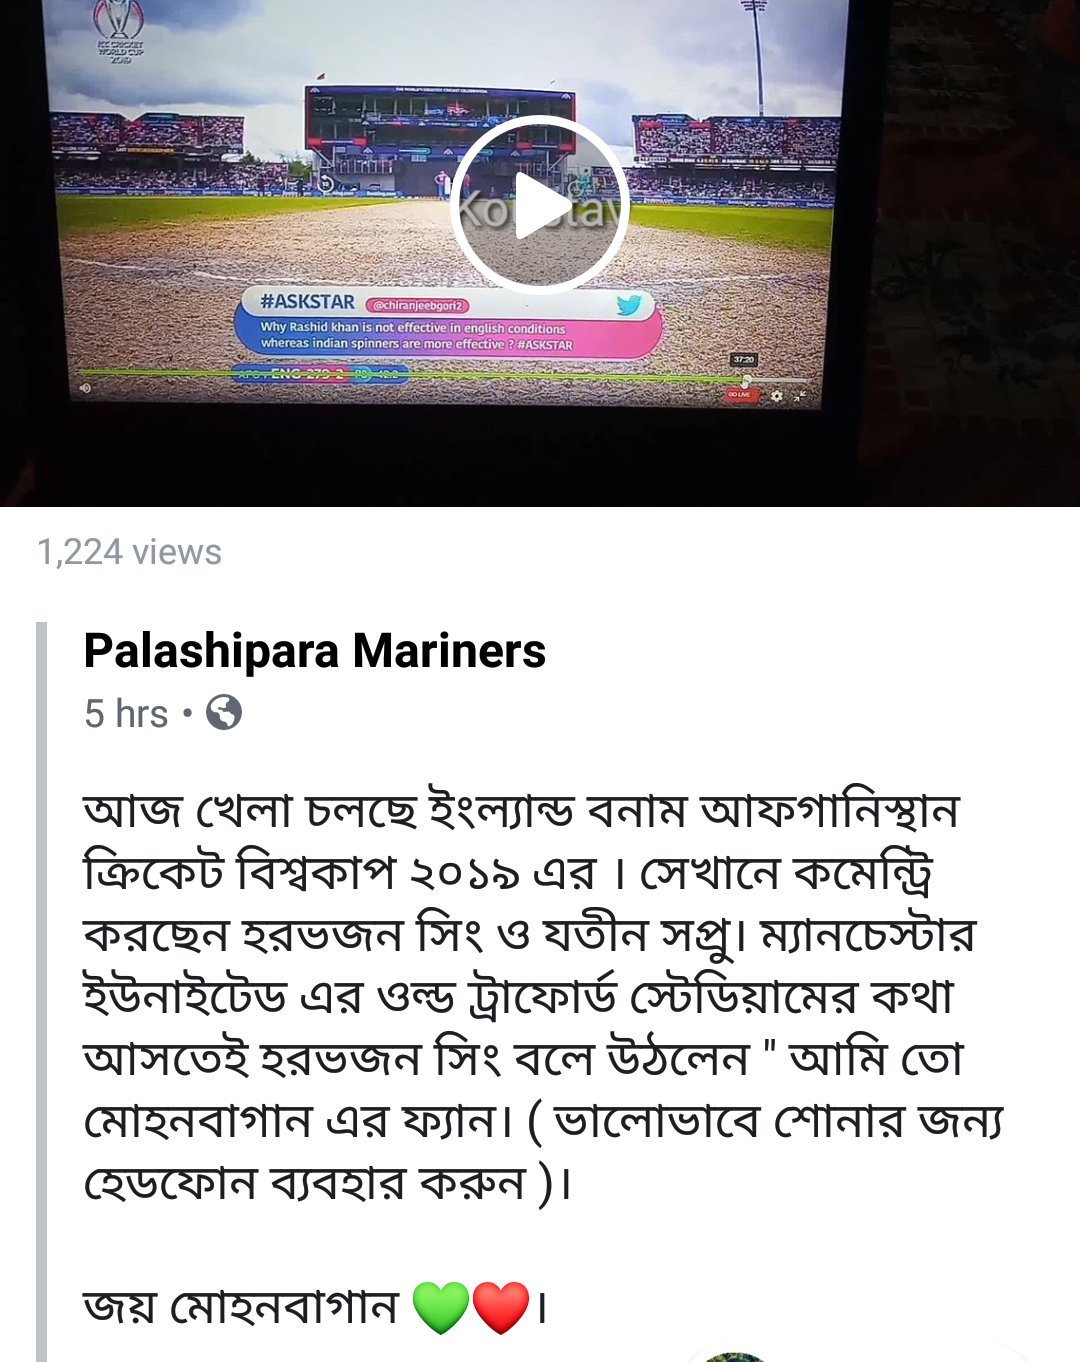 Harbhajan Singh Wins Heart of Indian Football Fans With His Comment screenshot 20190618 2321542345984093995833121.